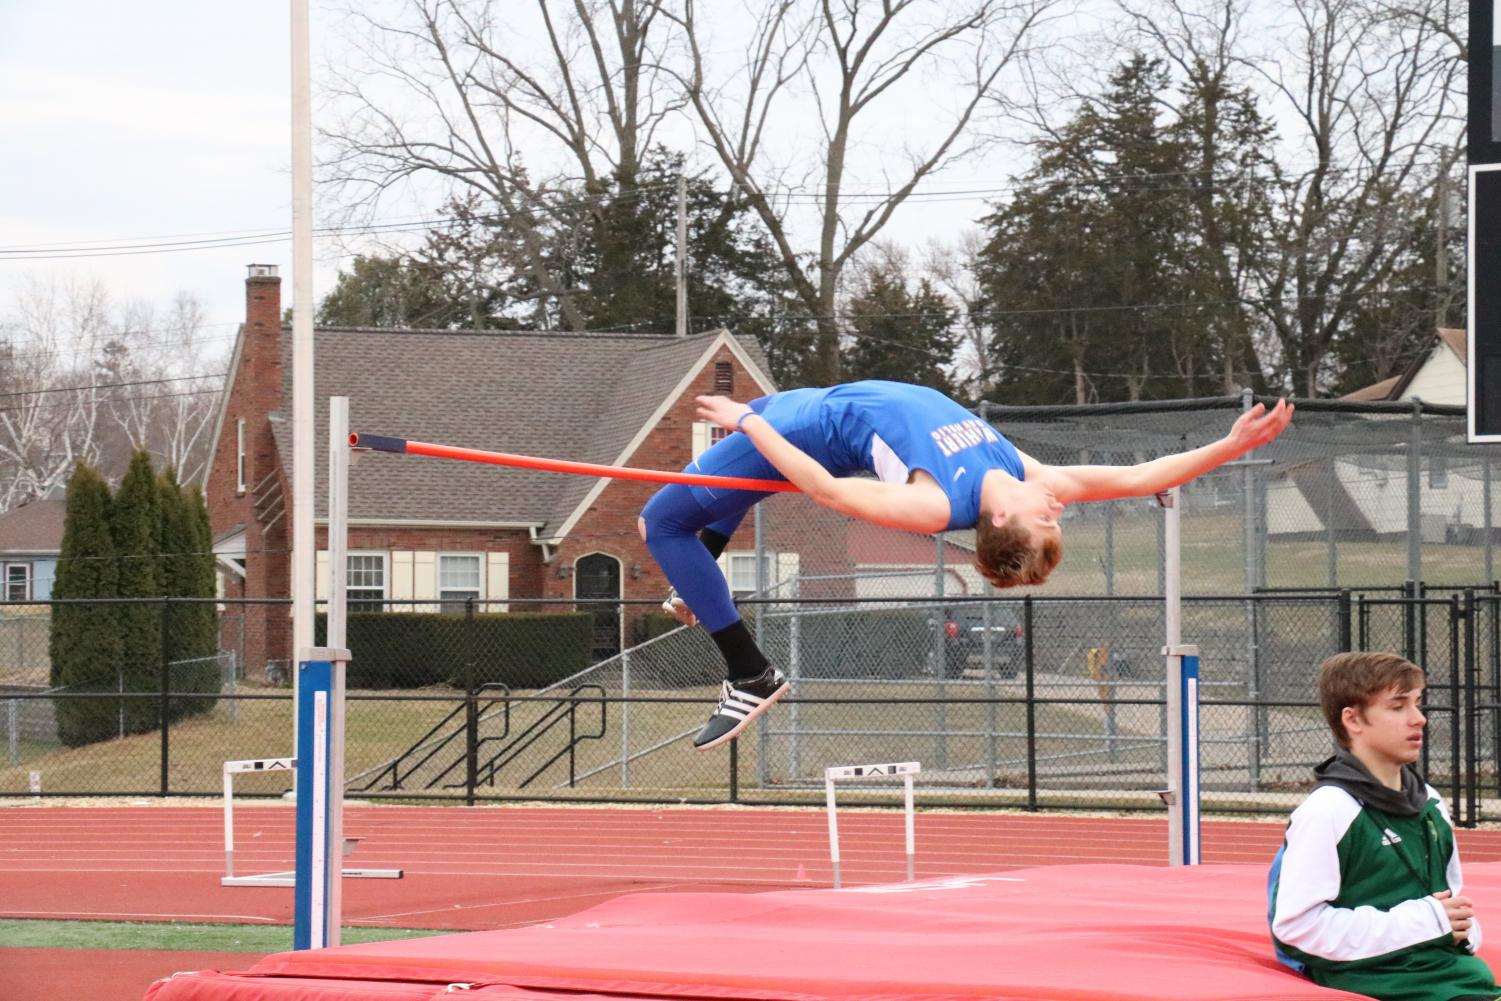 Leaping into state Matt Bandy, '19, competes in high jump. Bandy jumped 6'3 at state which placed him 6th.